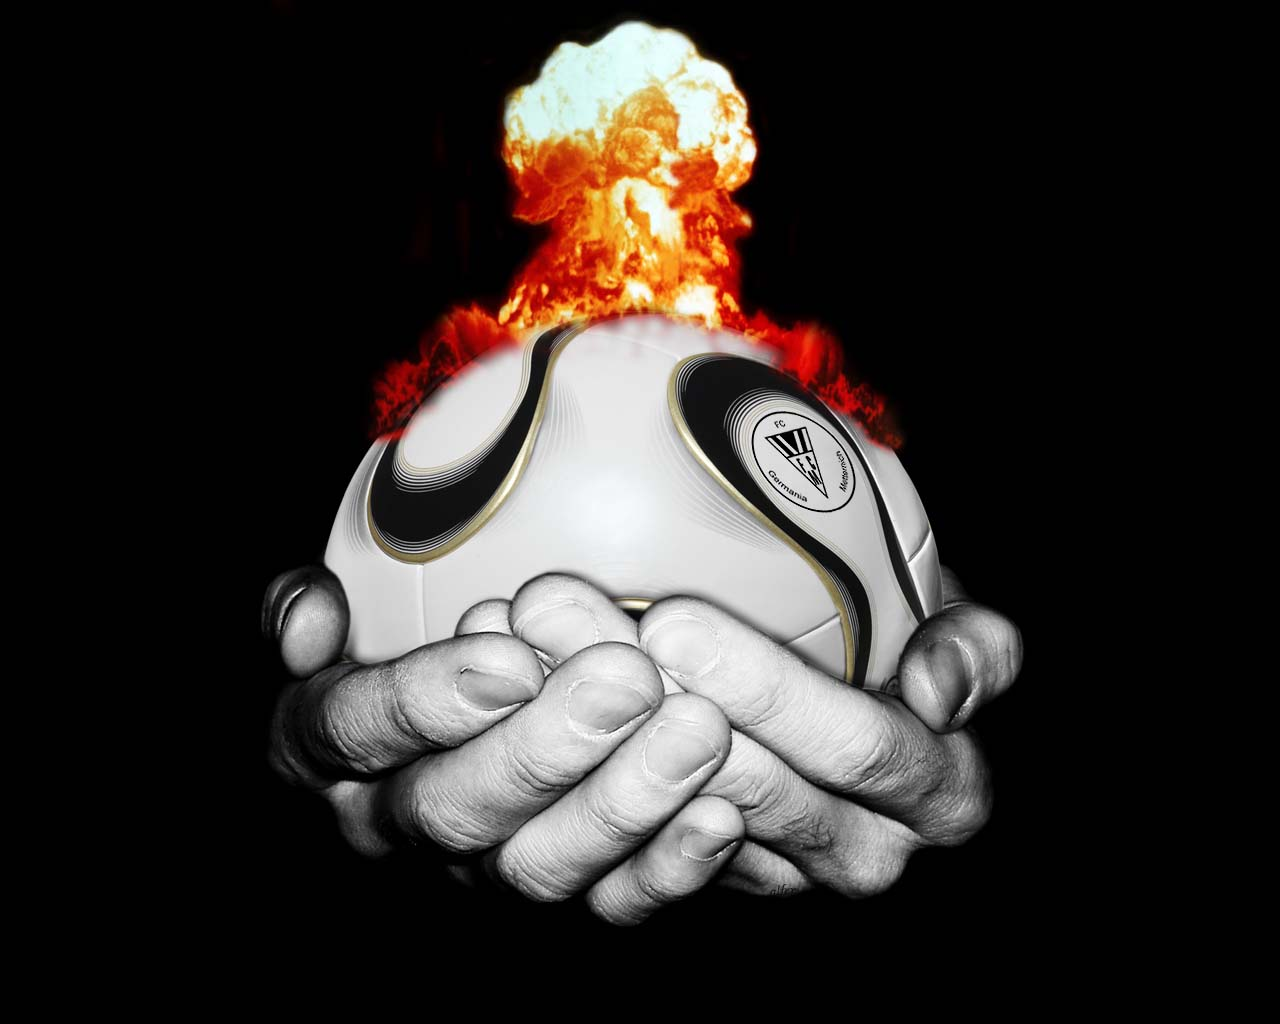 Soccer Ball Wallpaper: Wallpaper Collection For Your Computer And Mobile Phones